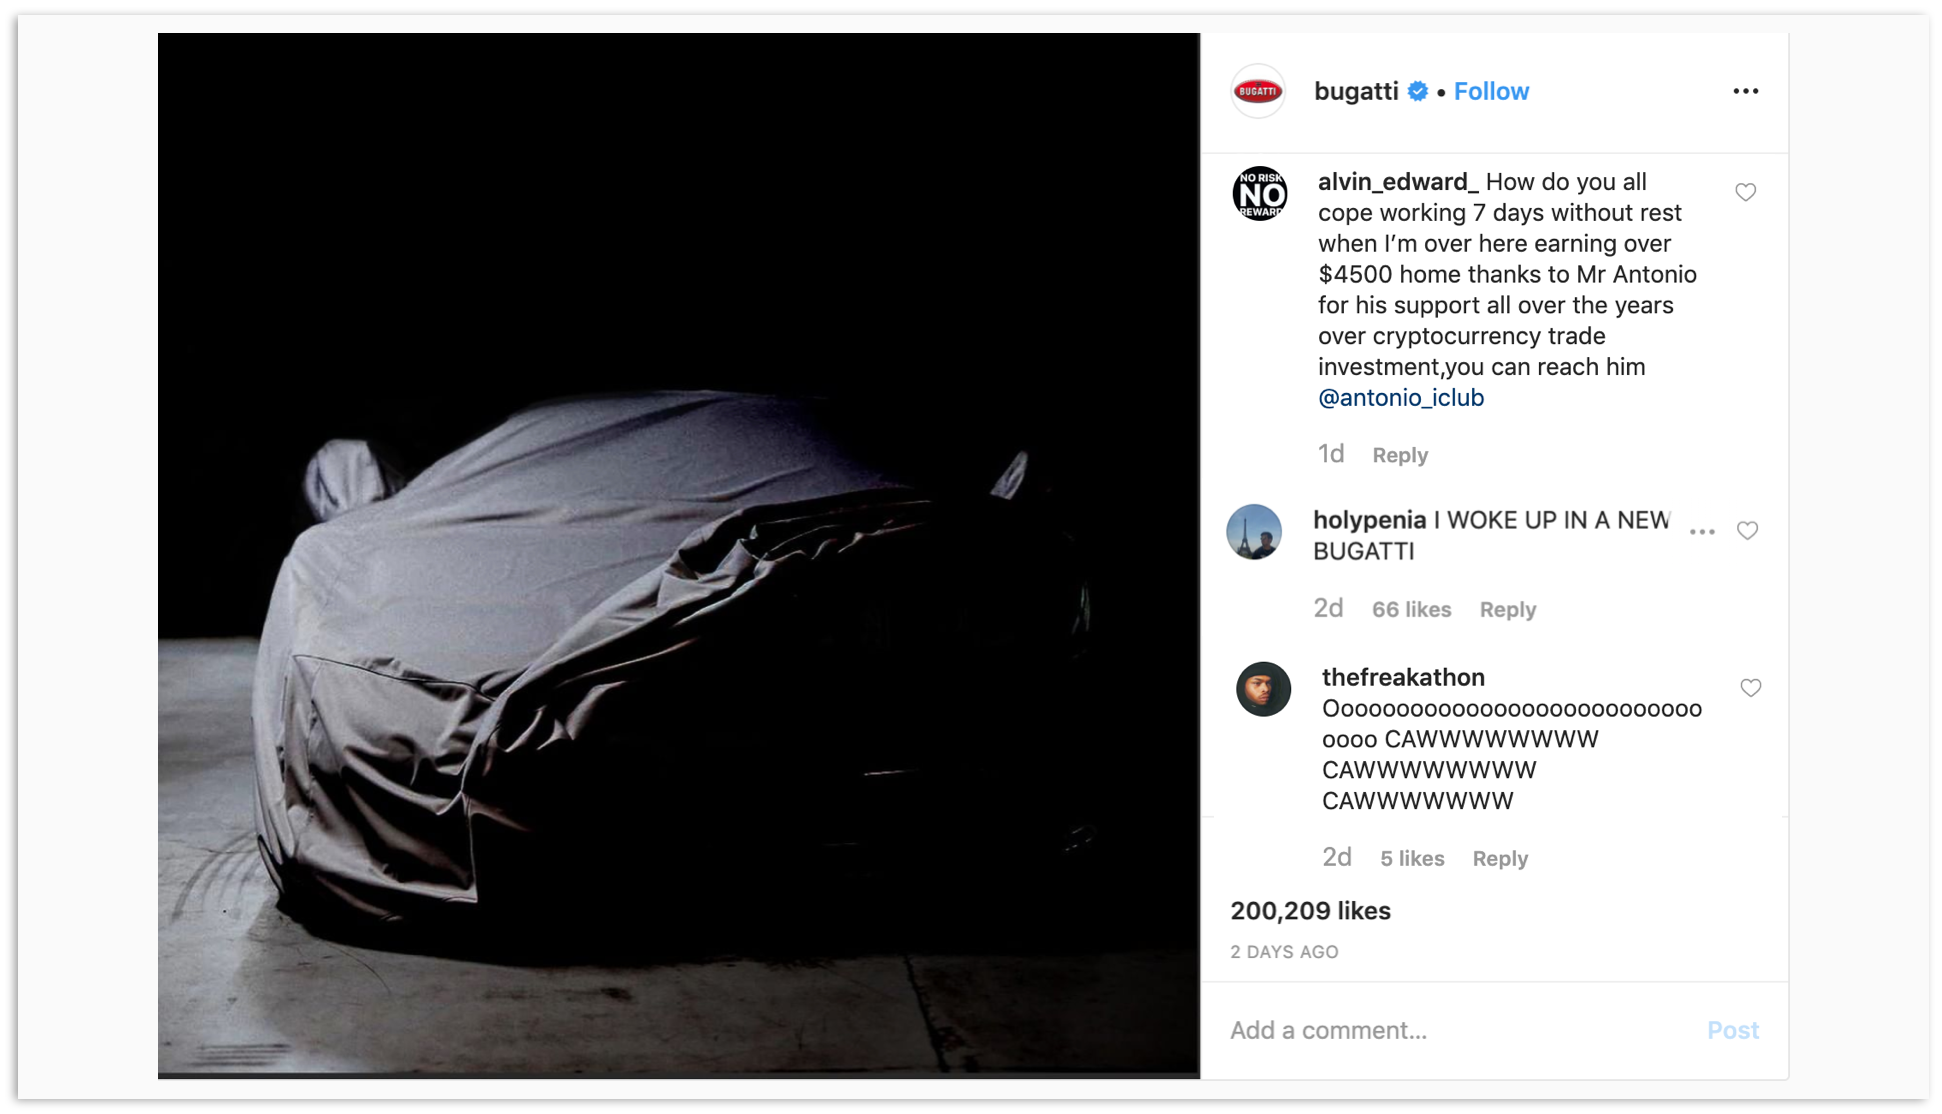 I Am Utterly Fascinated By Bugatti's Instagram Comments